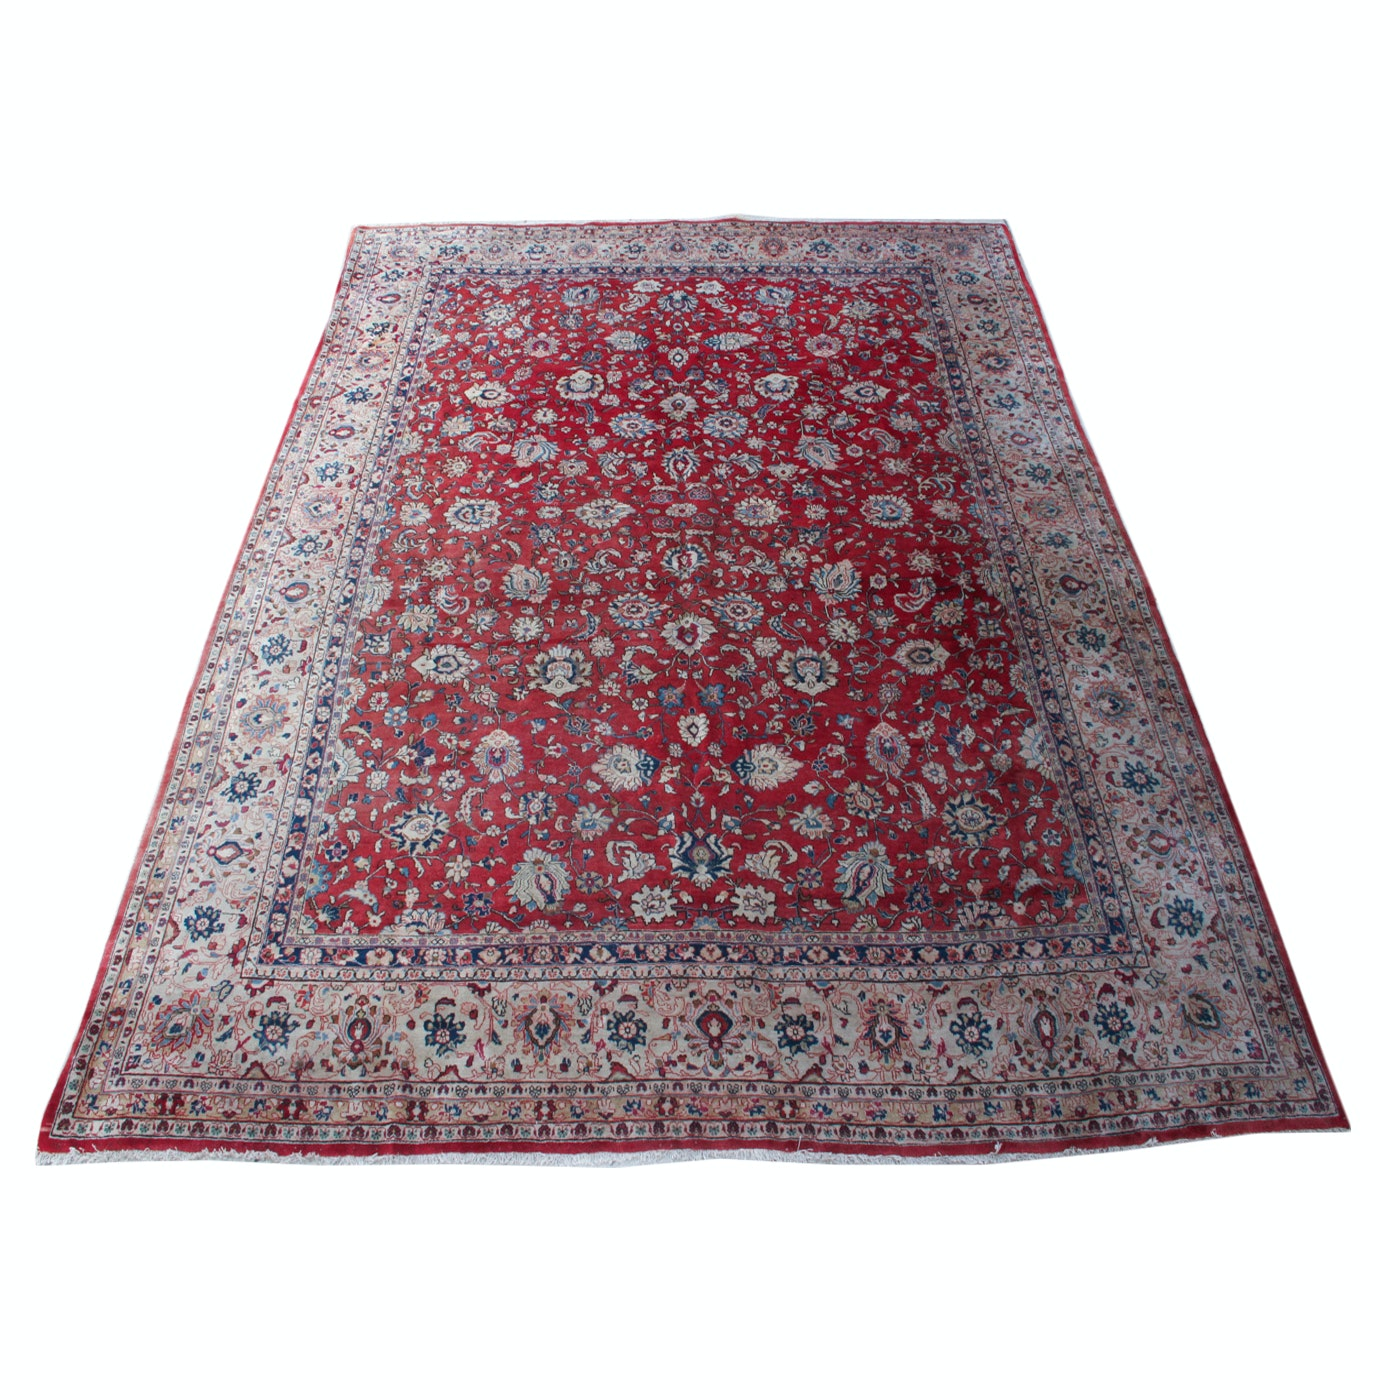 Antique Persian Hand-Knotted Sarouk Area Rug